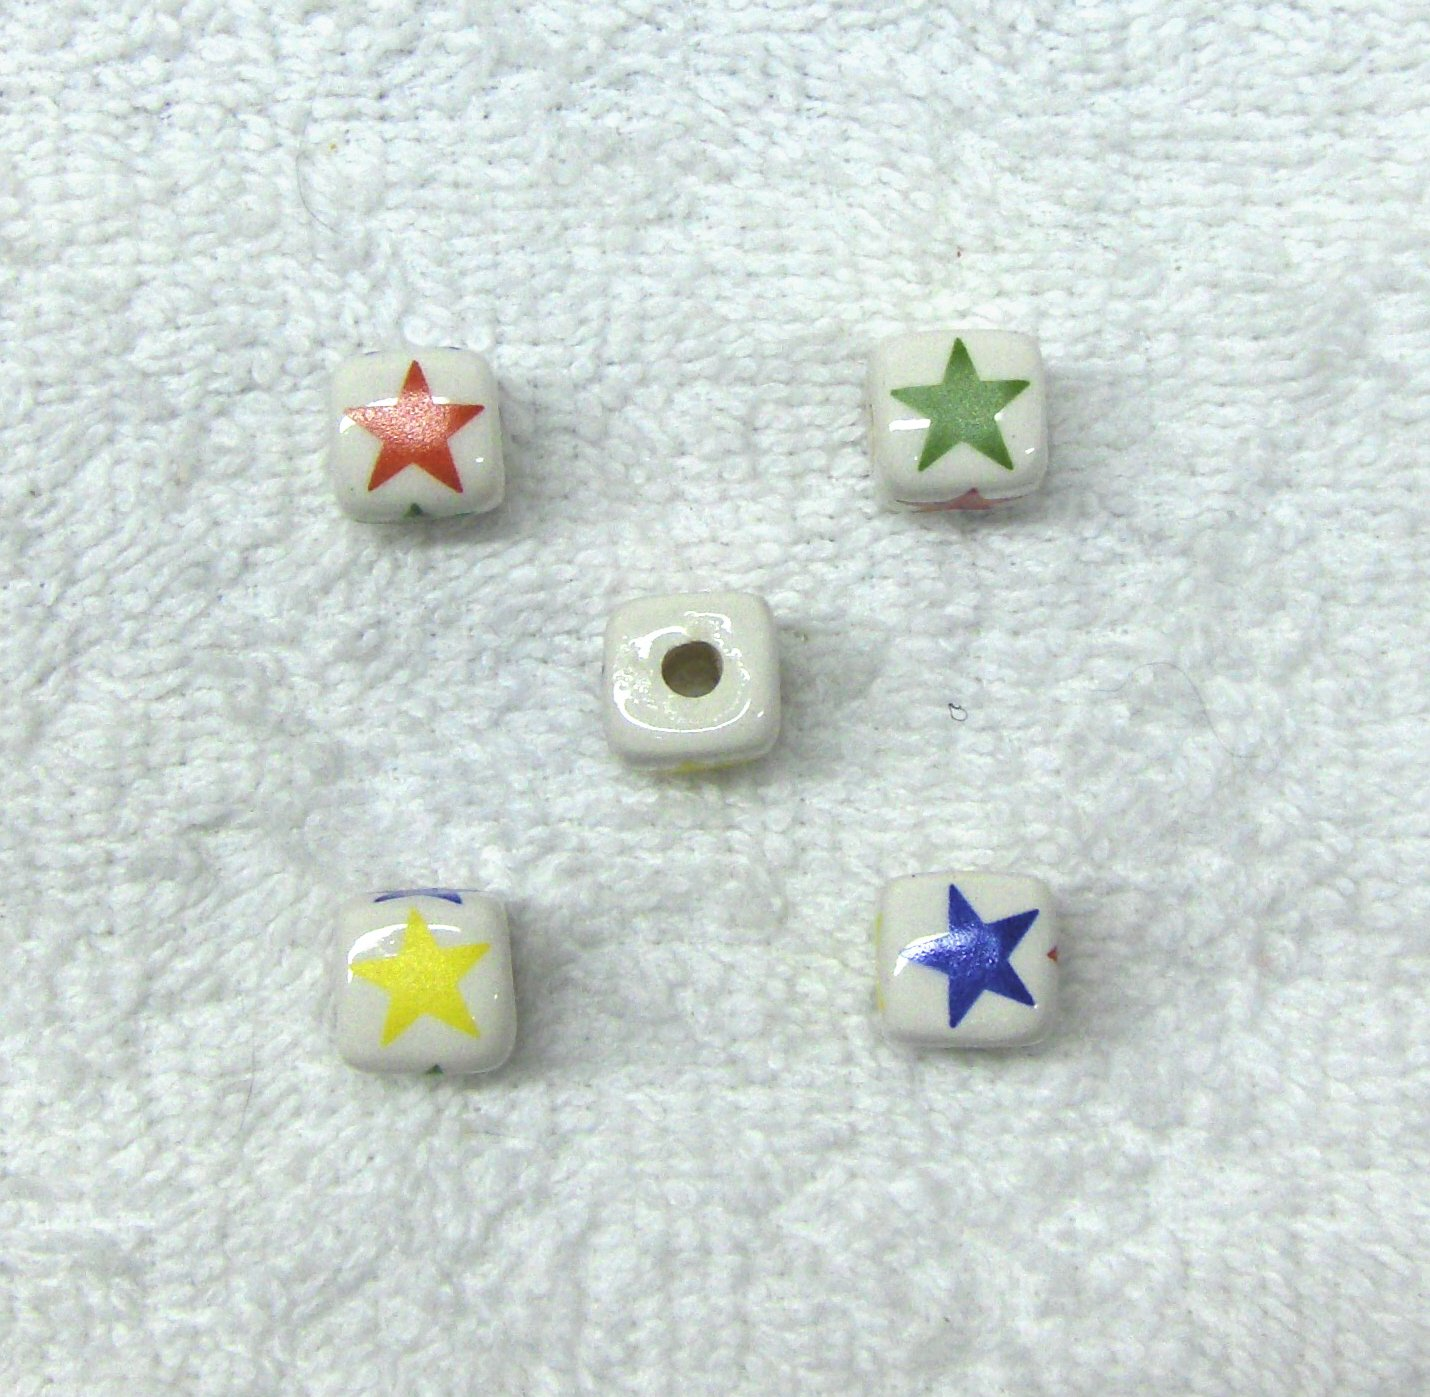 Ceramic 12mm Cube Beads with Colored Stars 36 pcs. No Metal, White